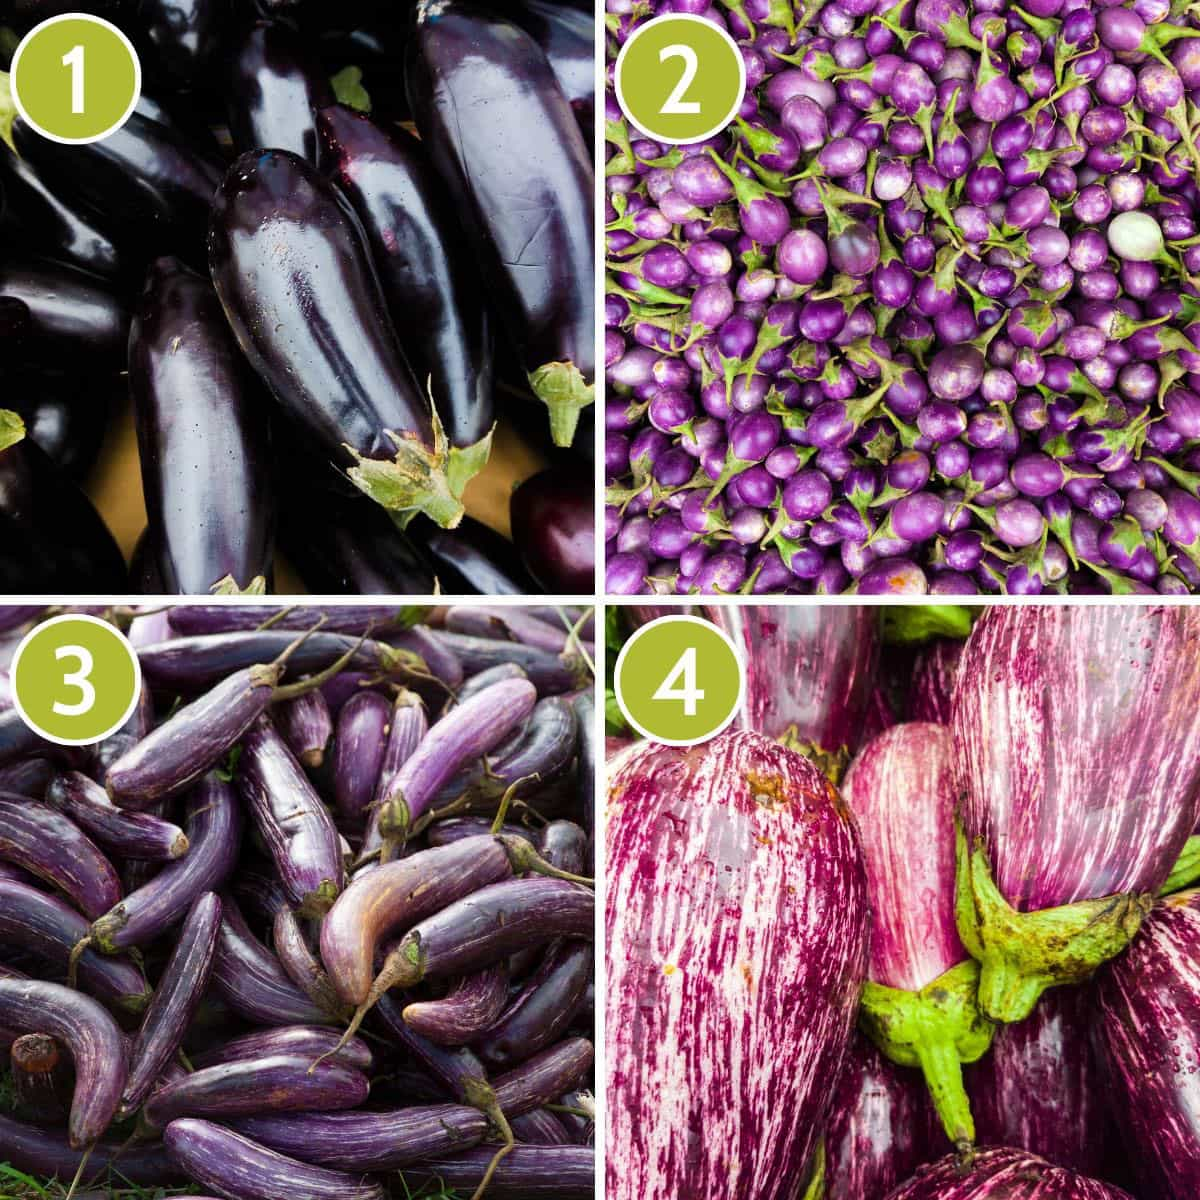 Collage of 4 photos showing different types of eggplant: Globe, Indian, Japanese and Fairy Tale